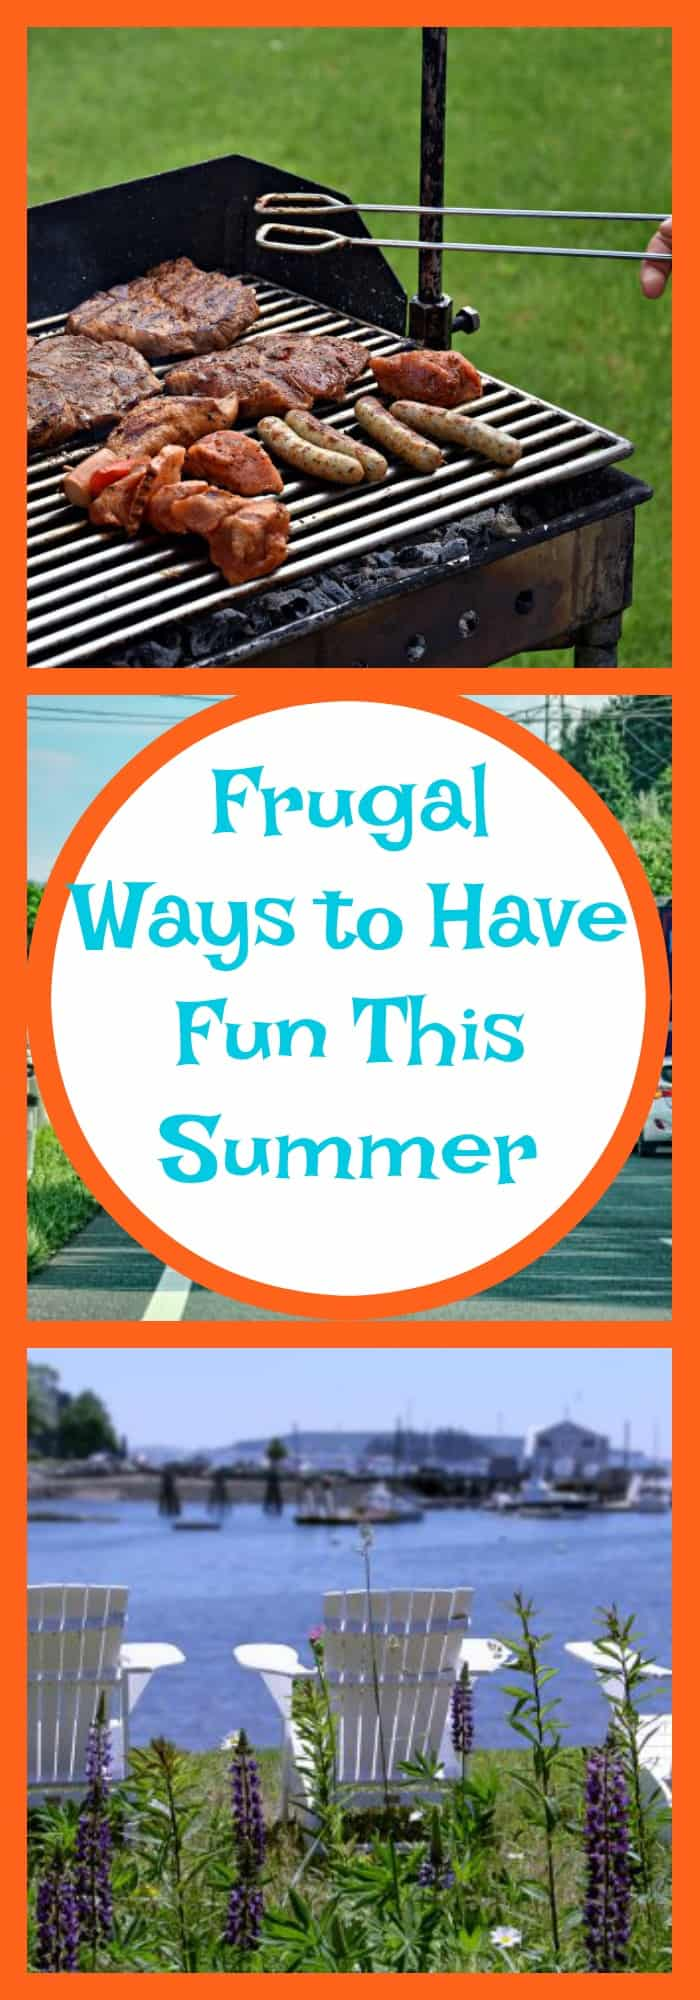 Family--Frugal Ways to Have Fun This Summer--The Organized Mom